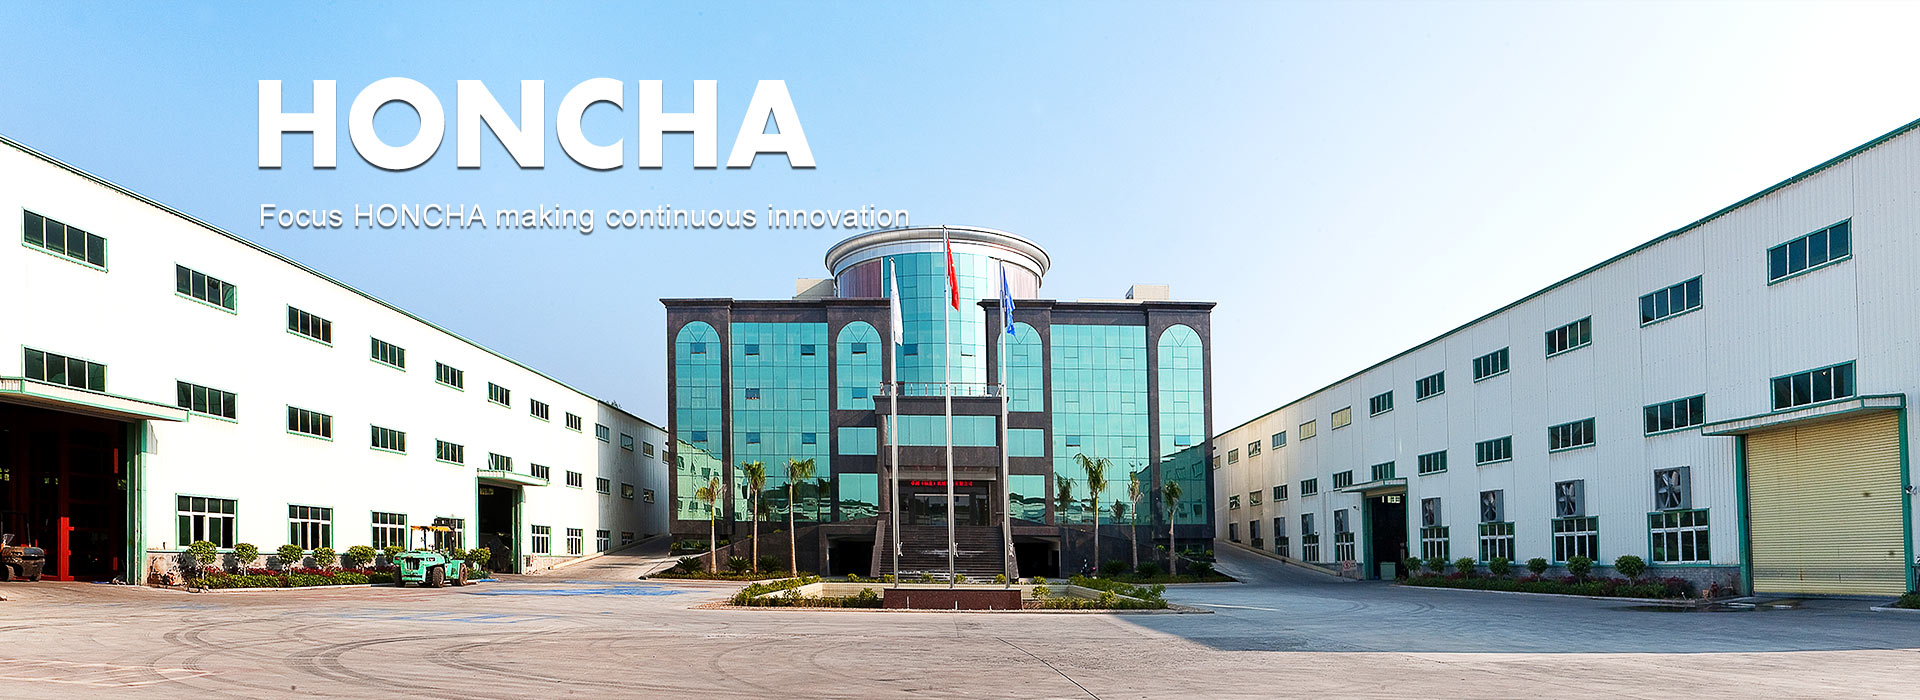 Focus HONCHA make continuous innovation